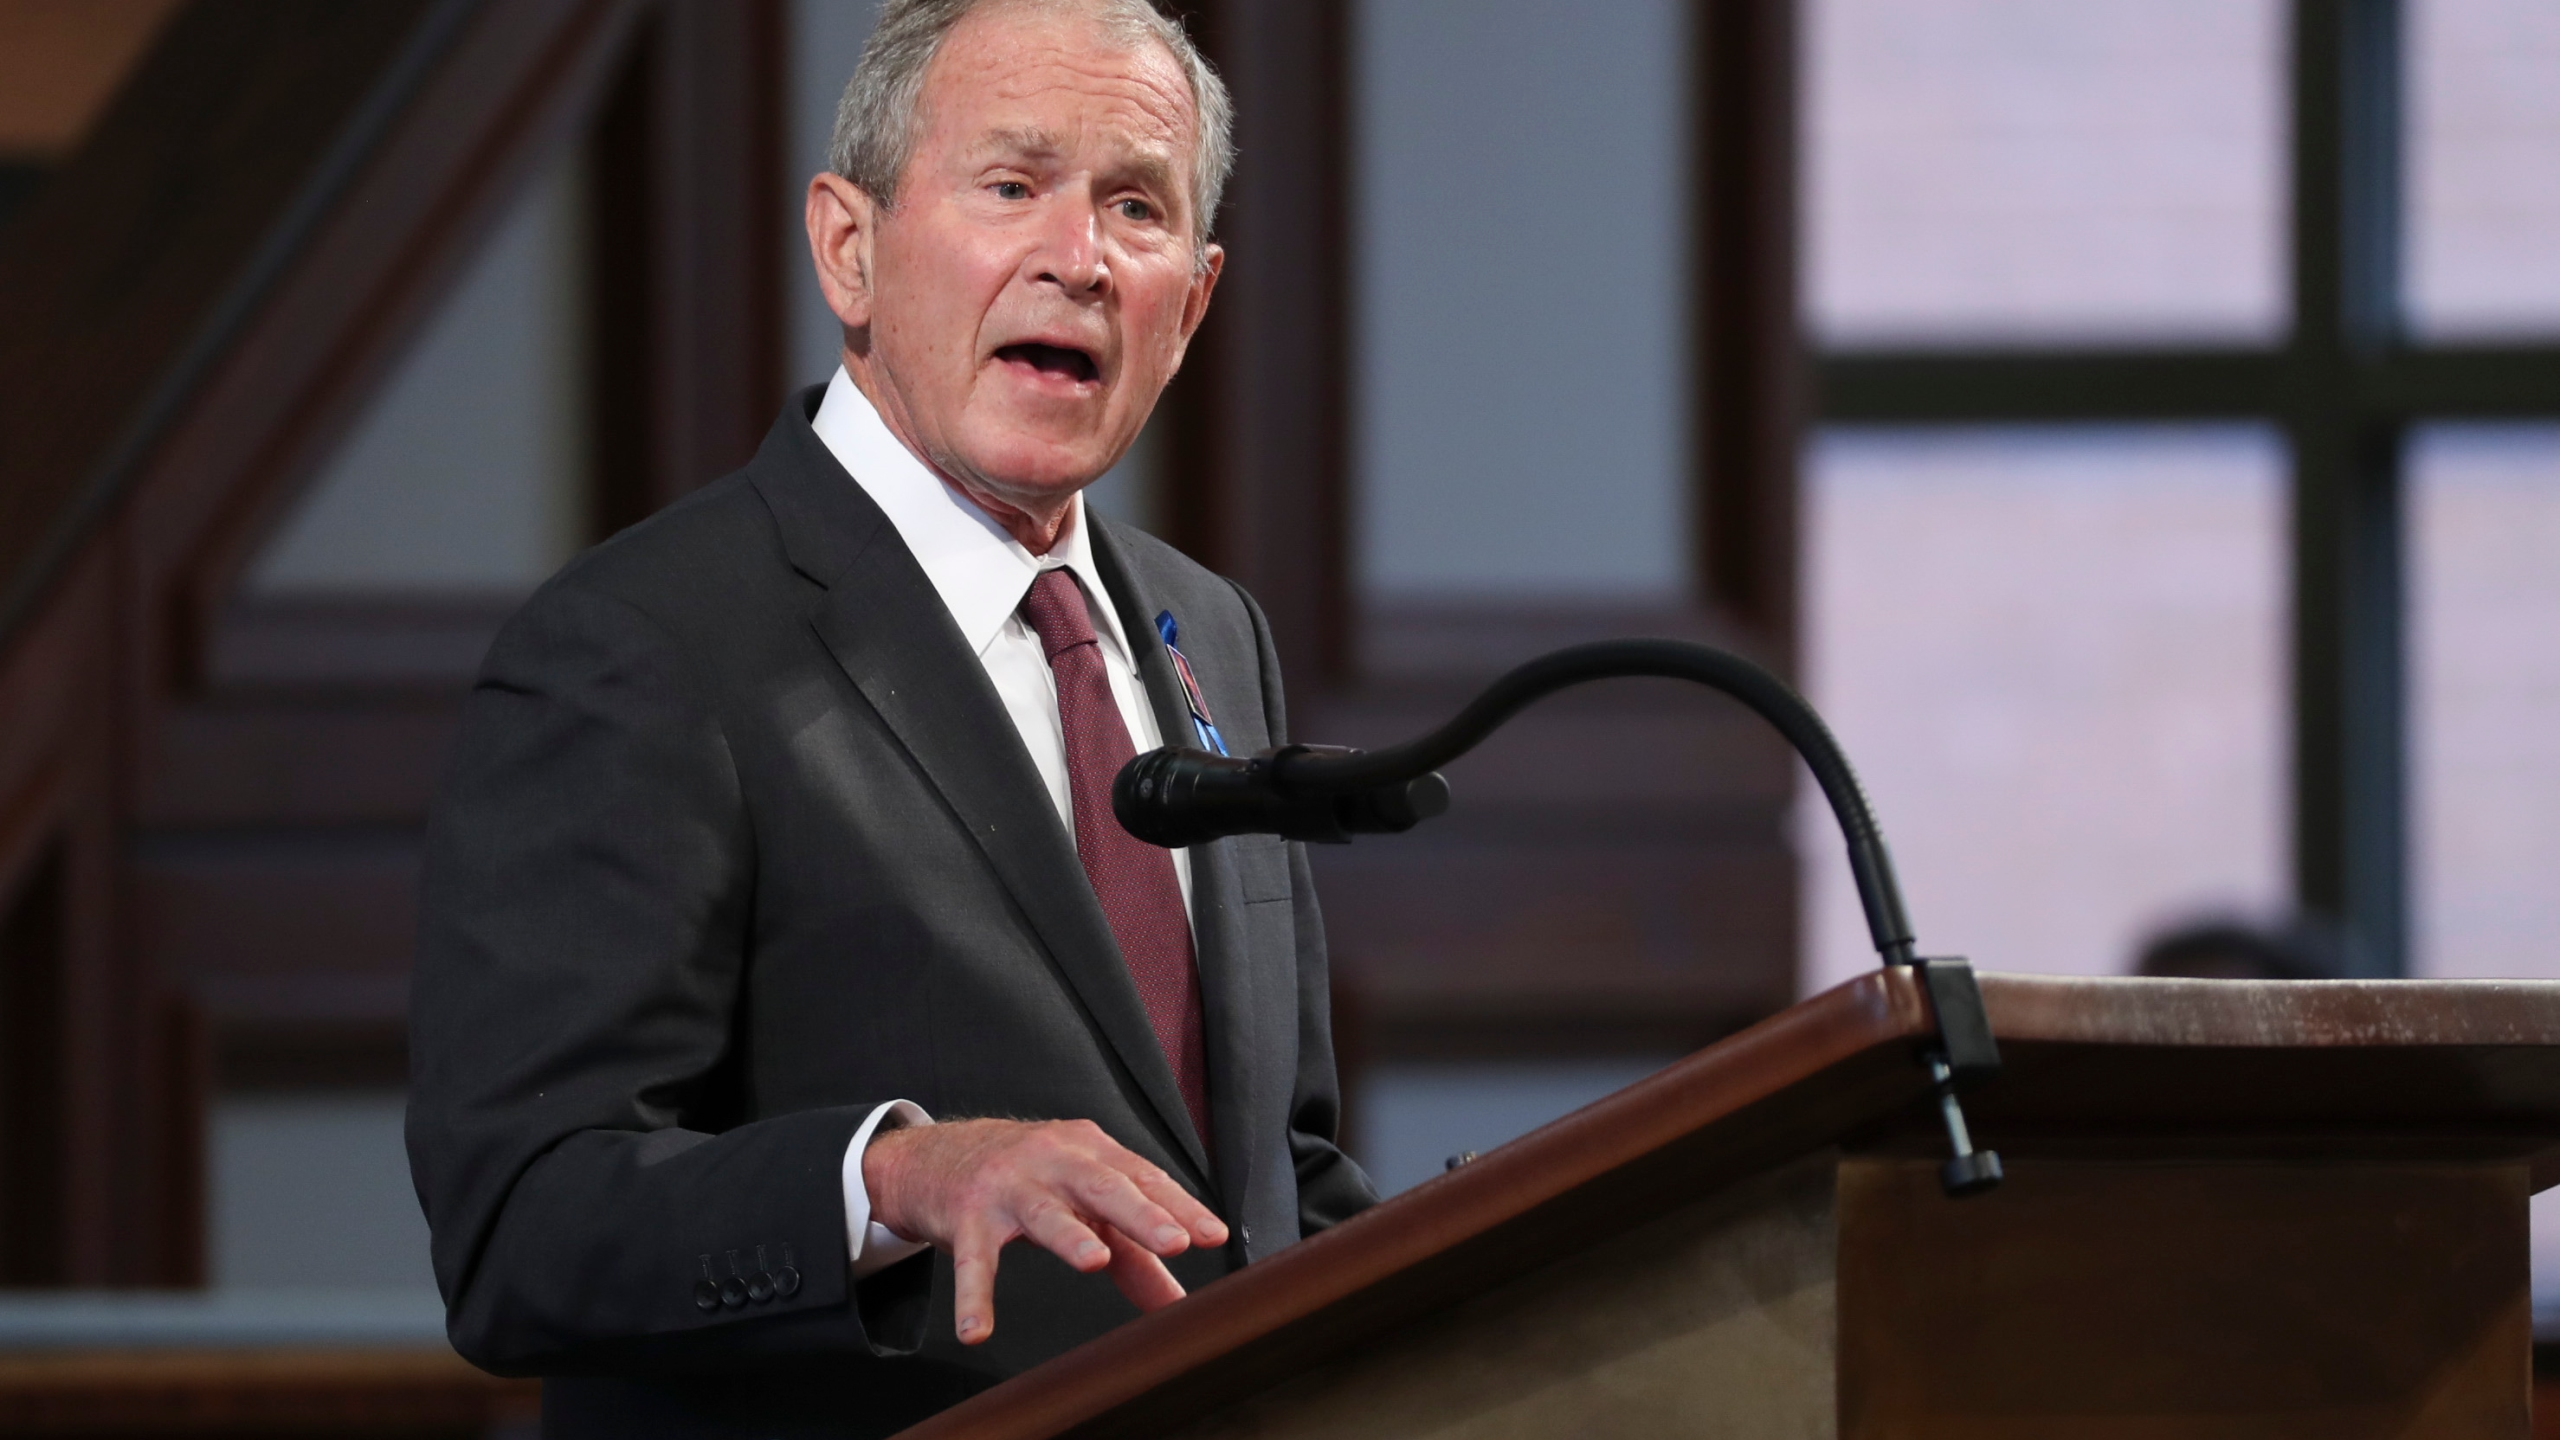 Former U.S. President George W. Bush speaks during the funeral service of late Civil Rights leader John Lewis at the State Capitol in Atlanta, Georgia on July 30, 2020. (ALYSSA POINTER/POOL/AFP via Getty Images)